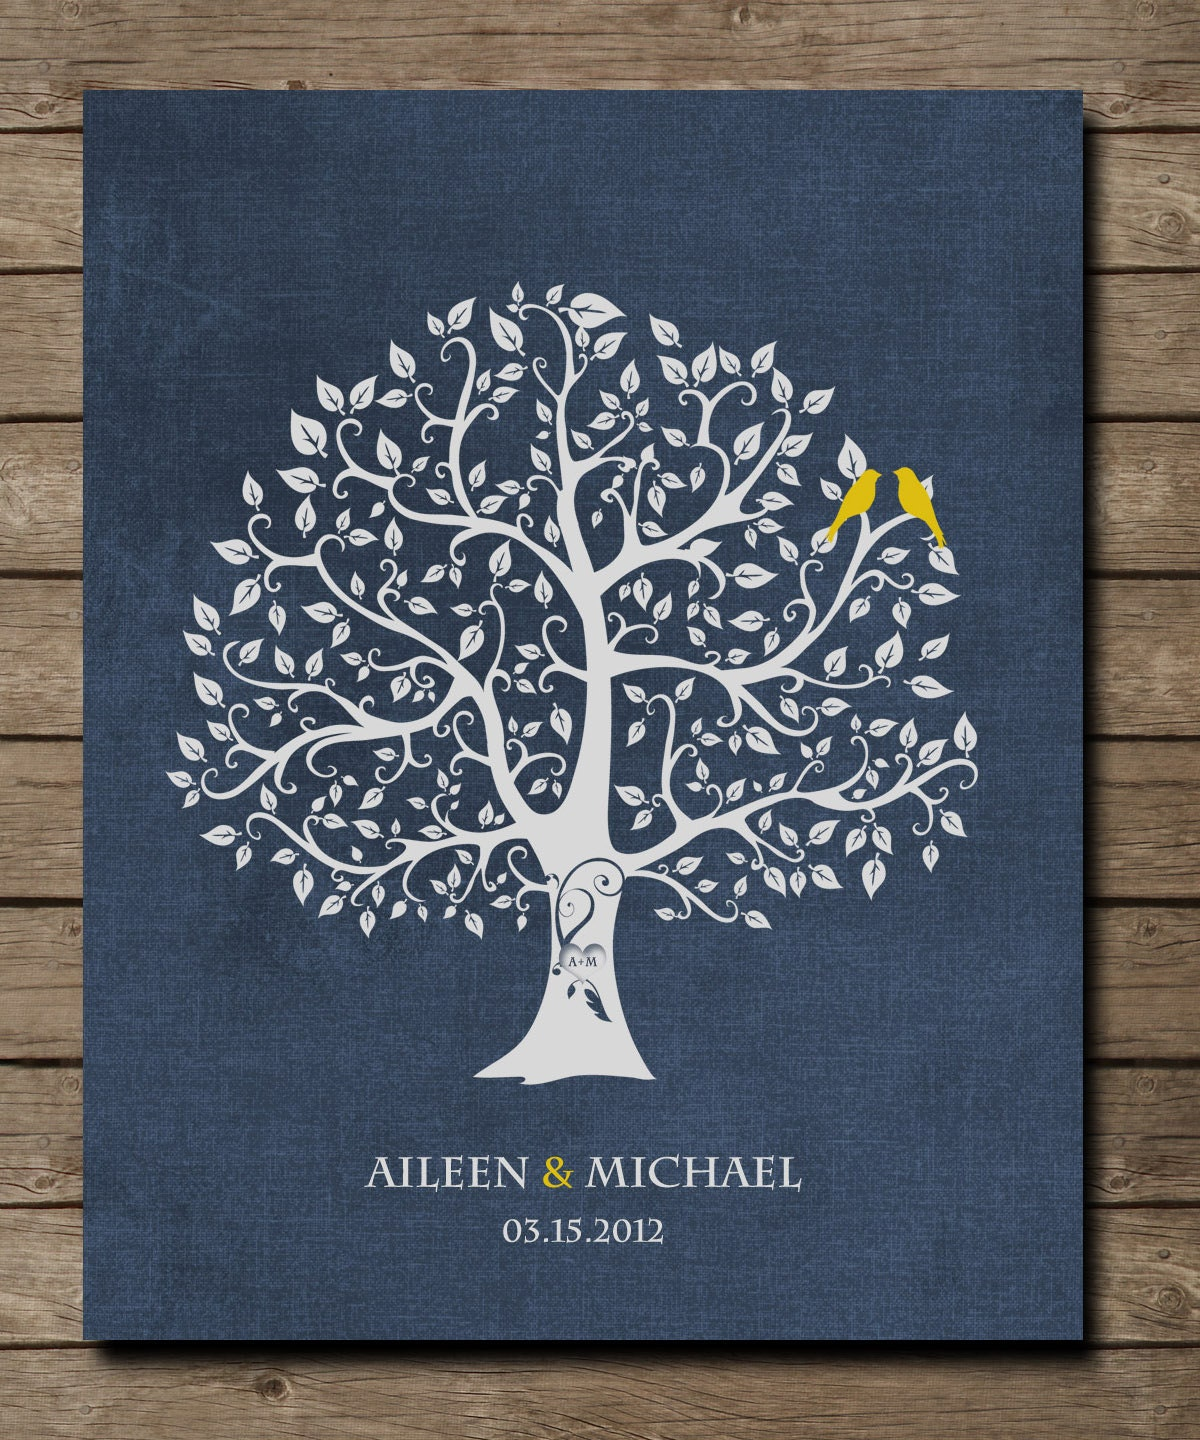 Custom wedding accessories personalized wedding gift for for Family tree gifts personalized